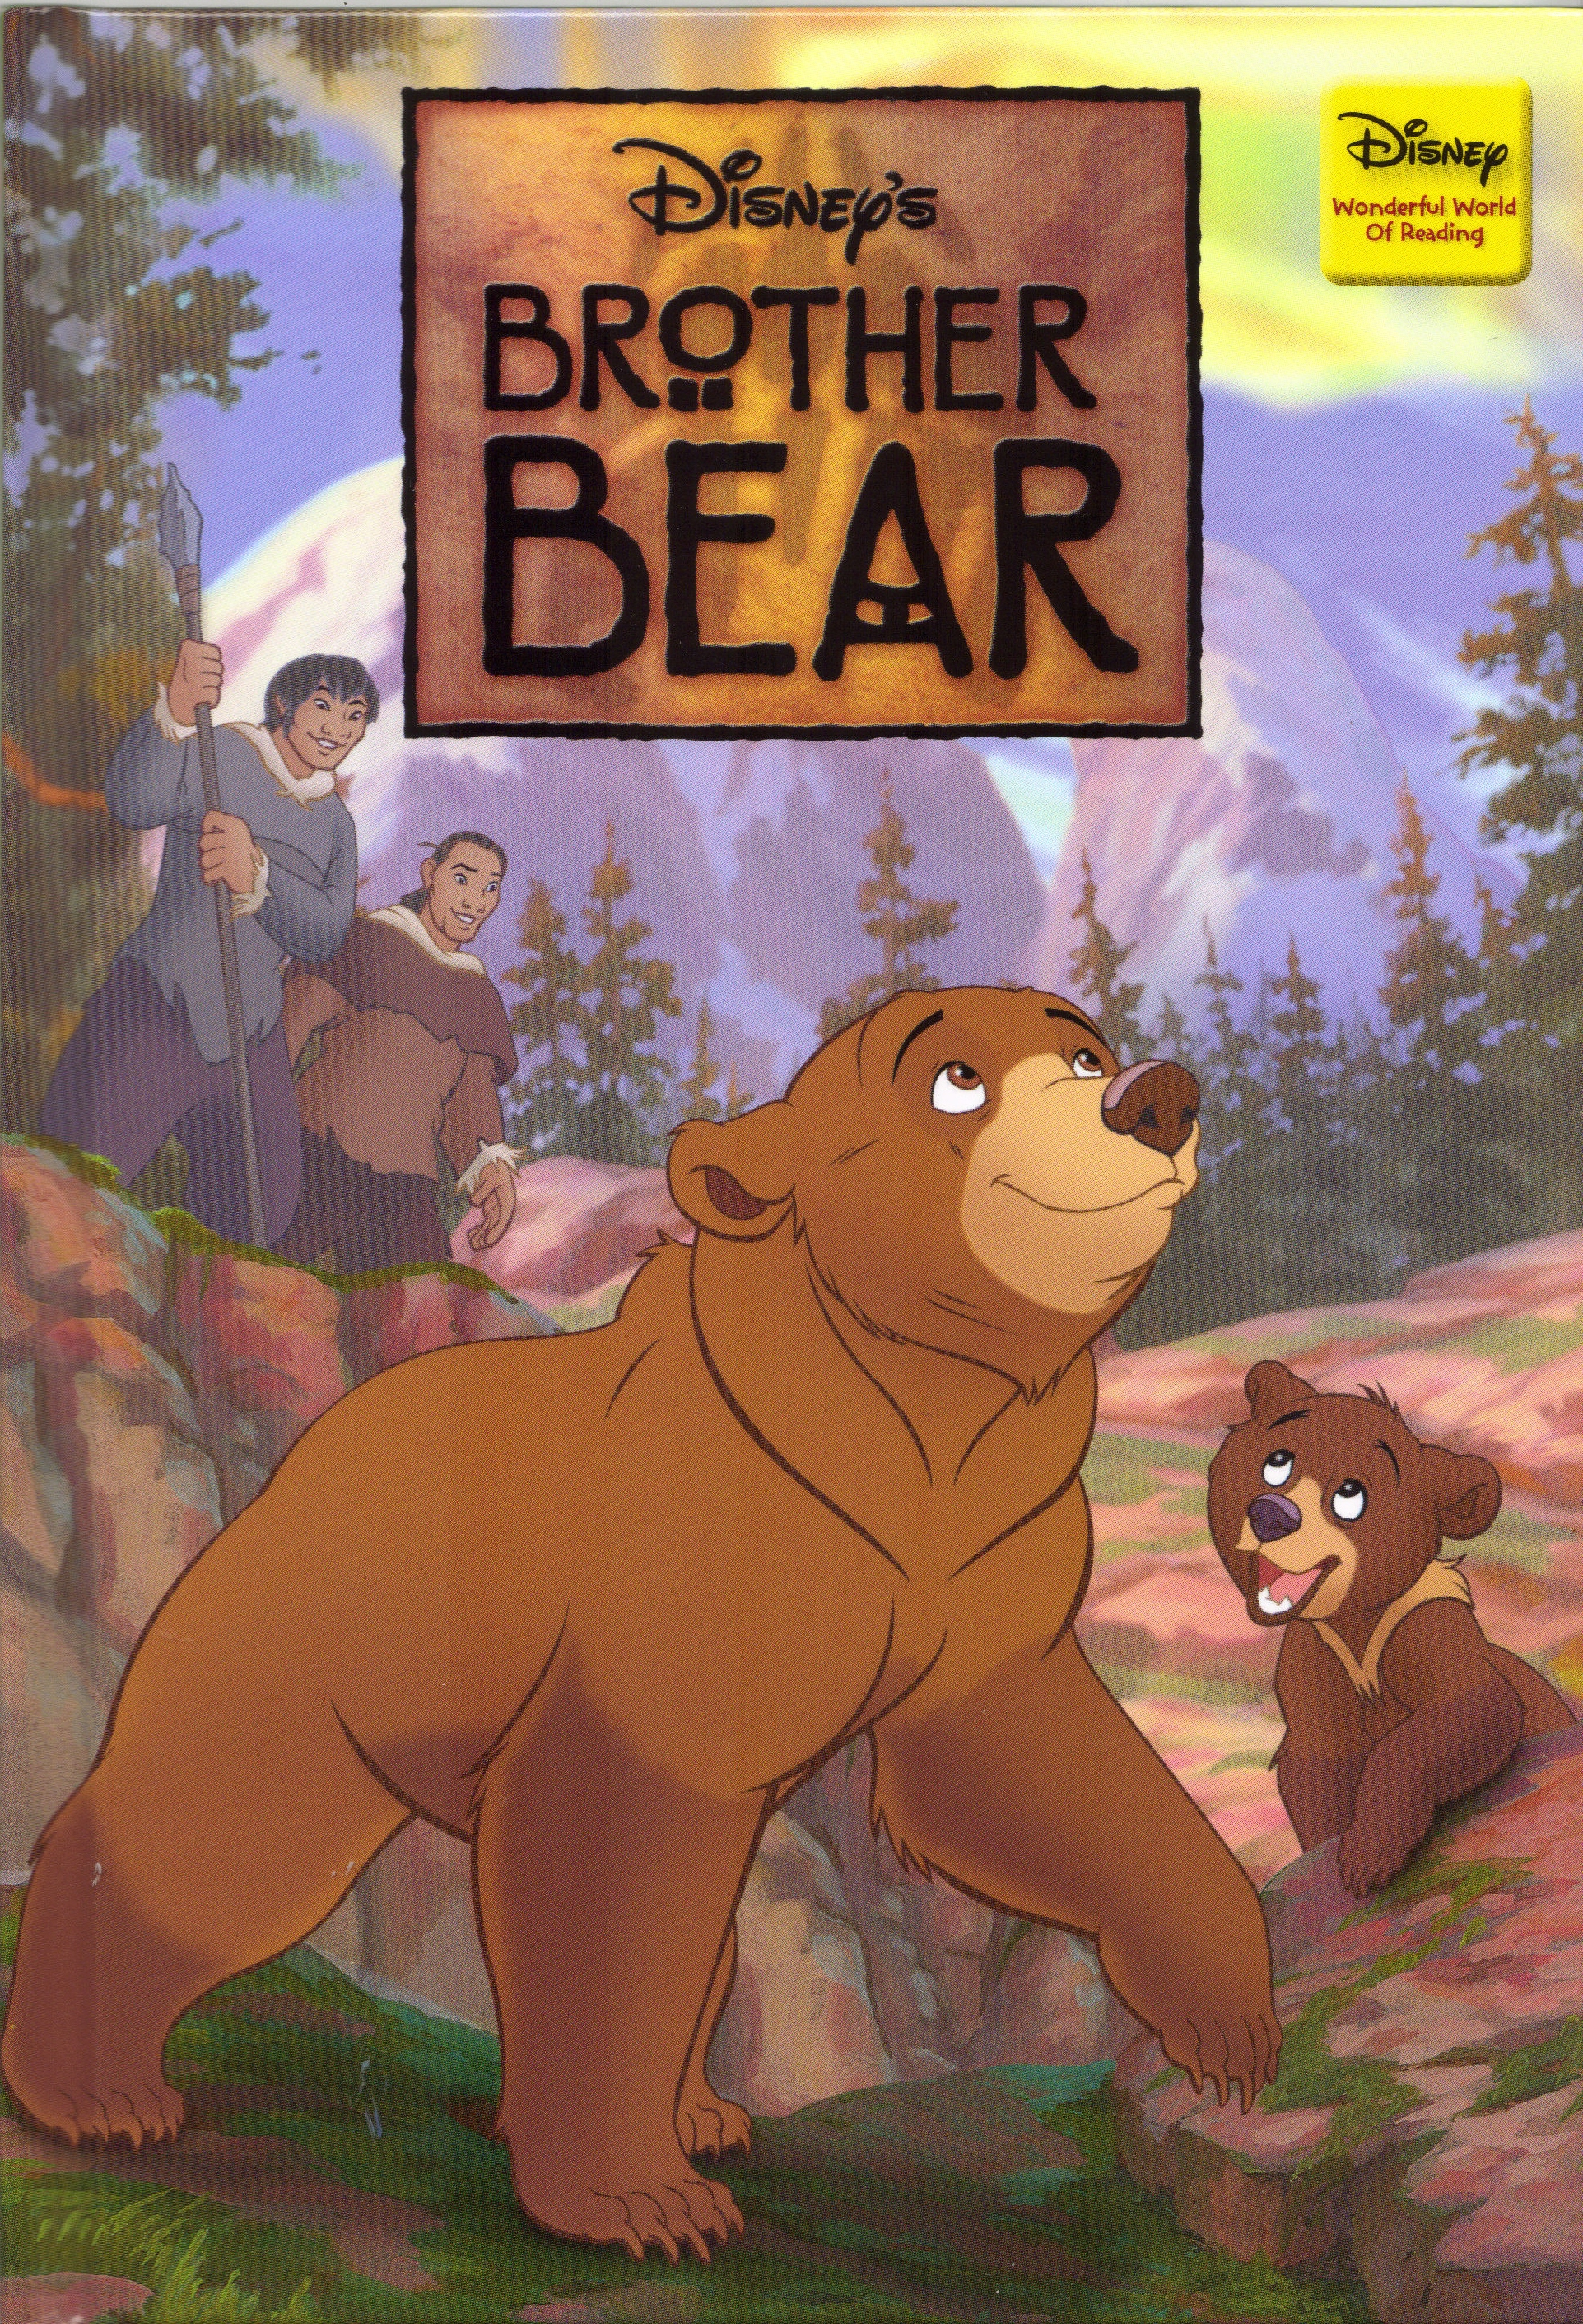 Brother Bear (Disney's Wonderful World of Reading)